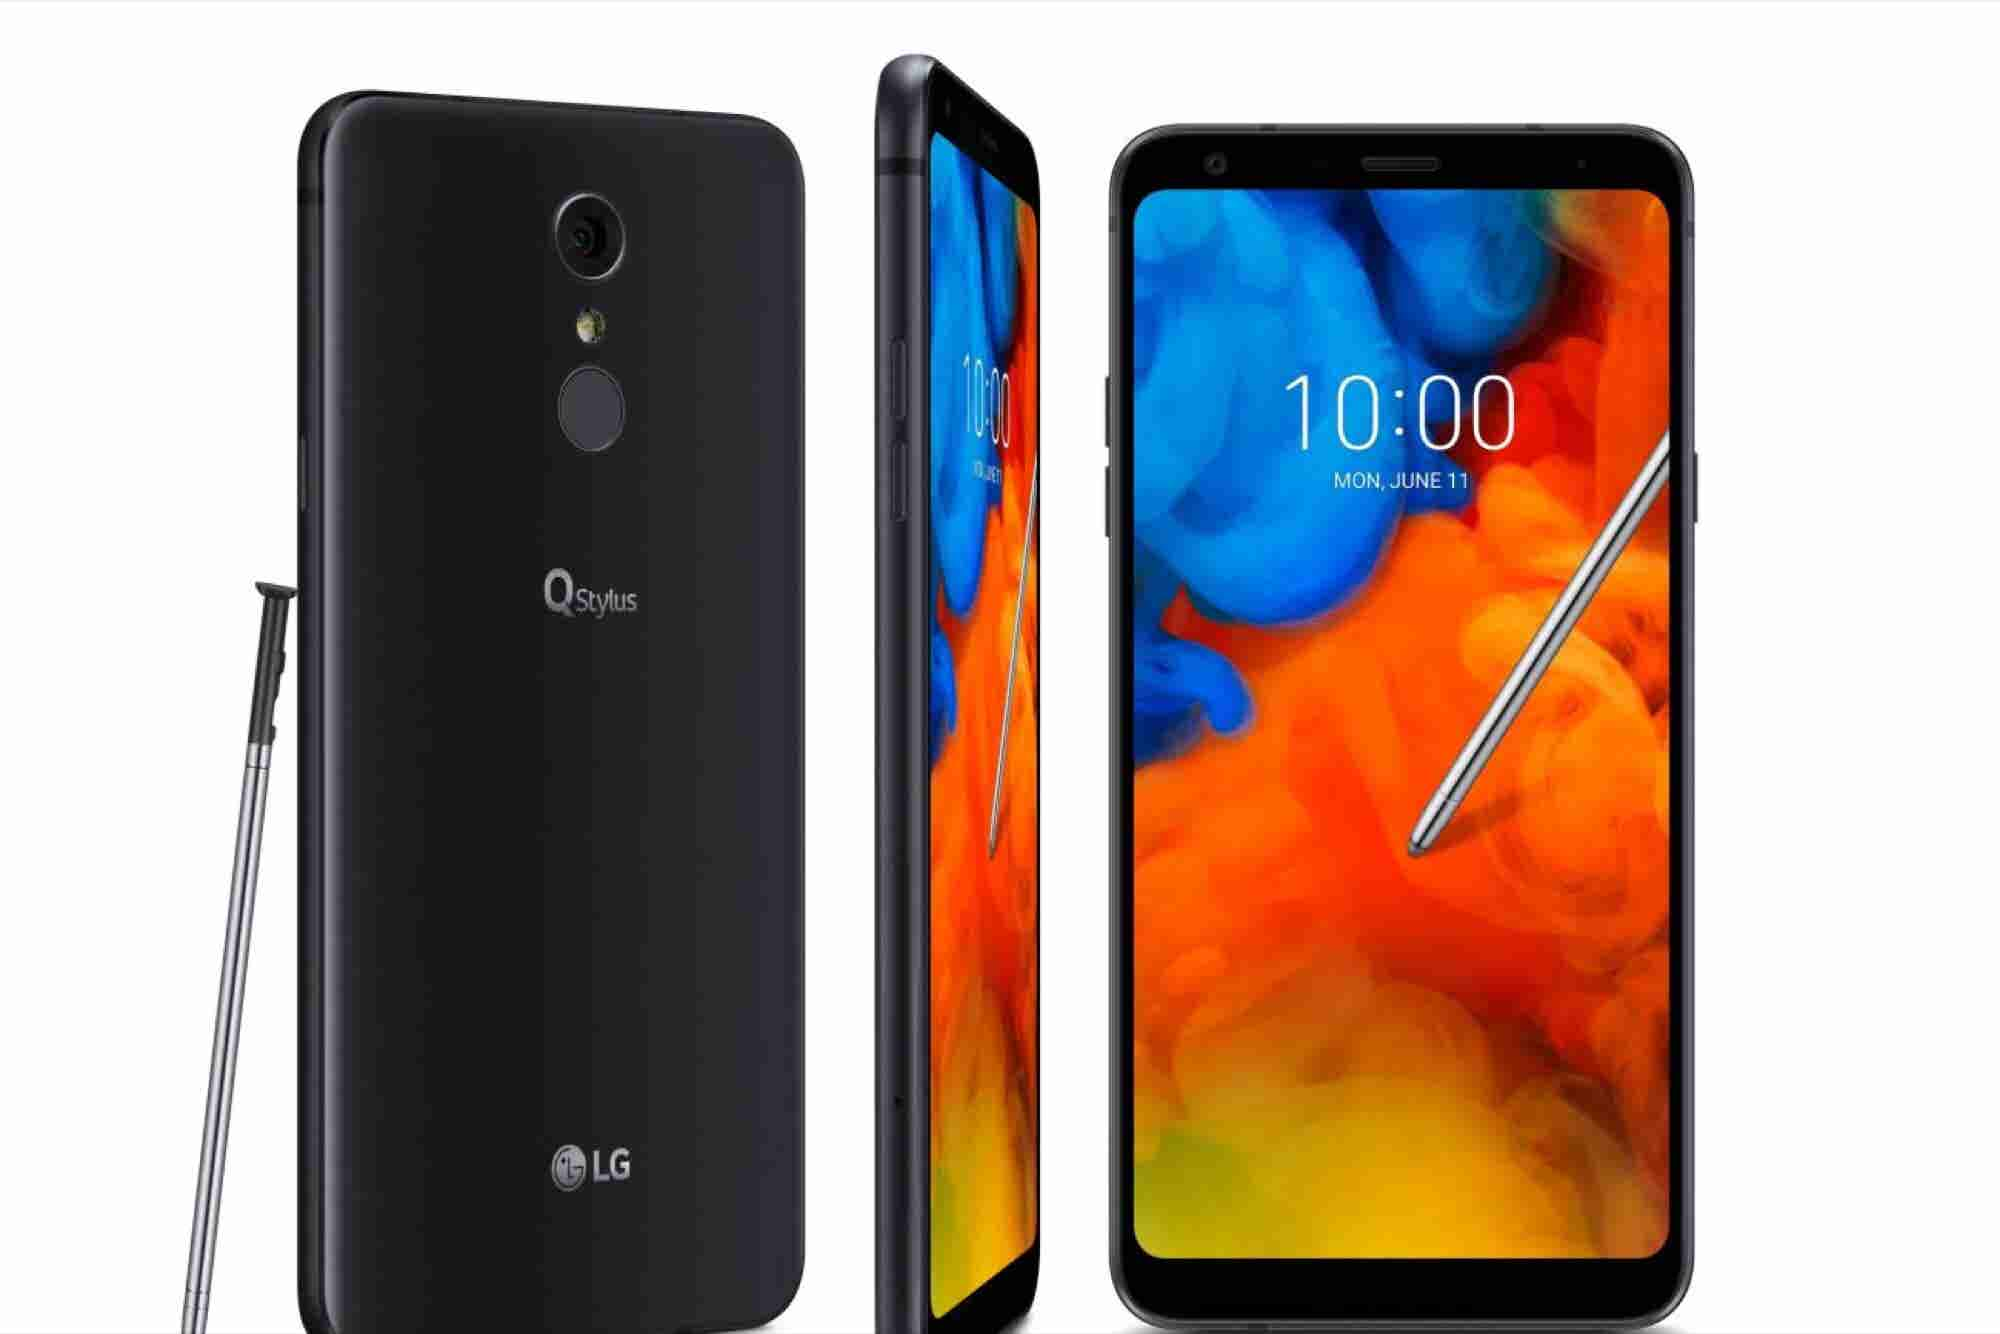 Style On Cue: LG's New Q Stylus Smartphone